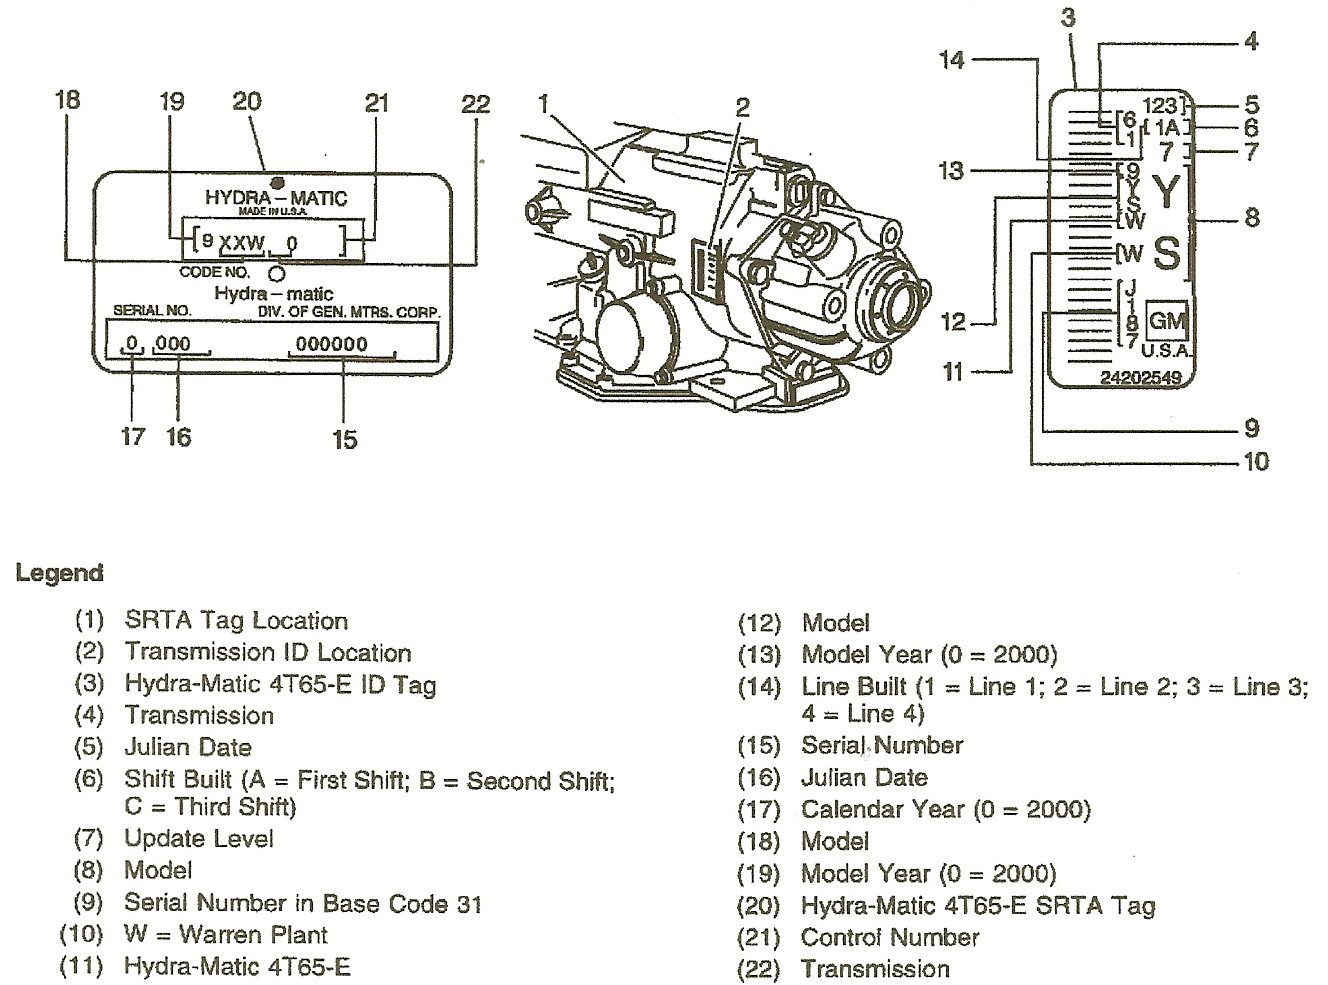 1996 Buick Lesabre Hvac Blower Motor Diagram furthermore Wiring Diagram For A 2001 Dodge Ram Van 1500 in addition 2004 Silverado Fuse Diagram as well 2001 Ford Expedition Rear Differential Diagram Wiring Photos also Power Steering Fluid Reservoir Location. on blower motor resistor replacement 2004 buick